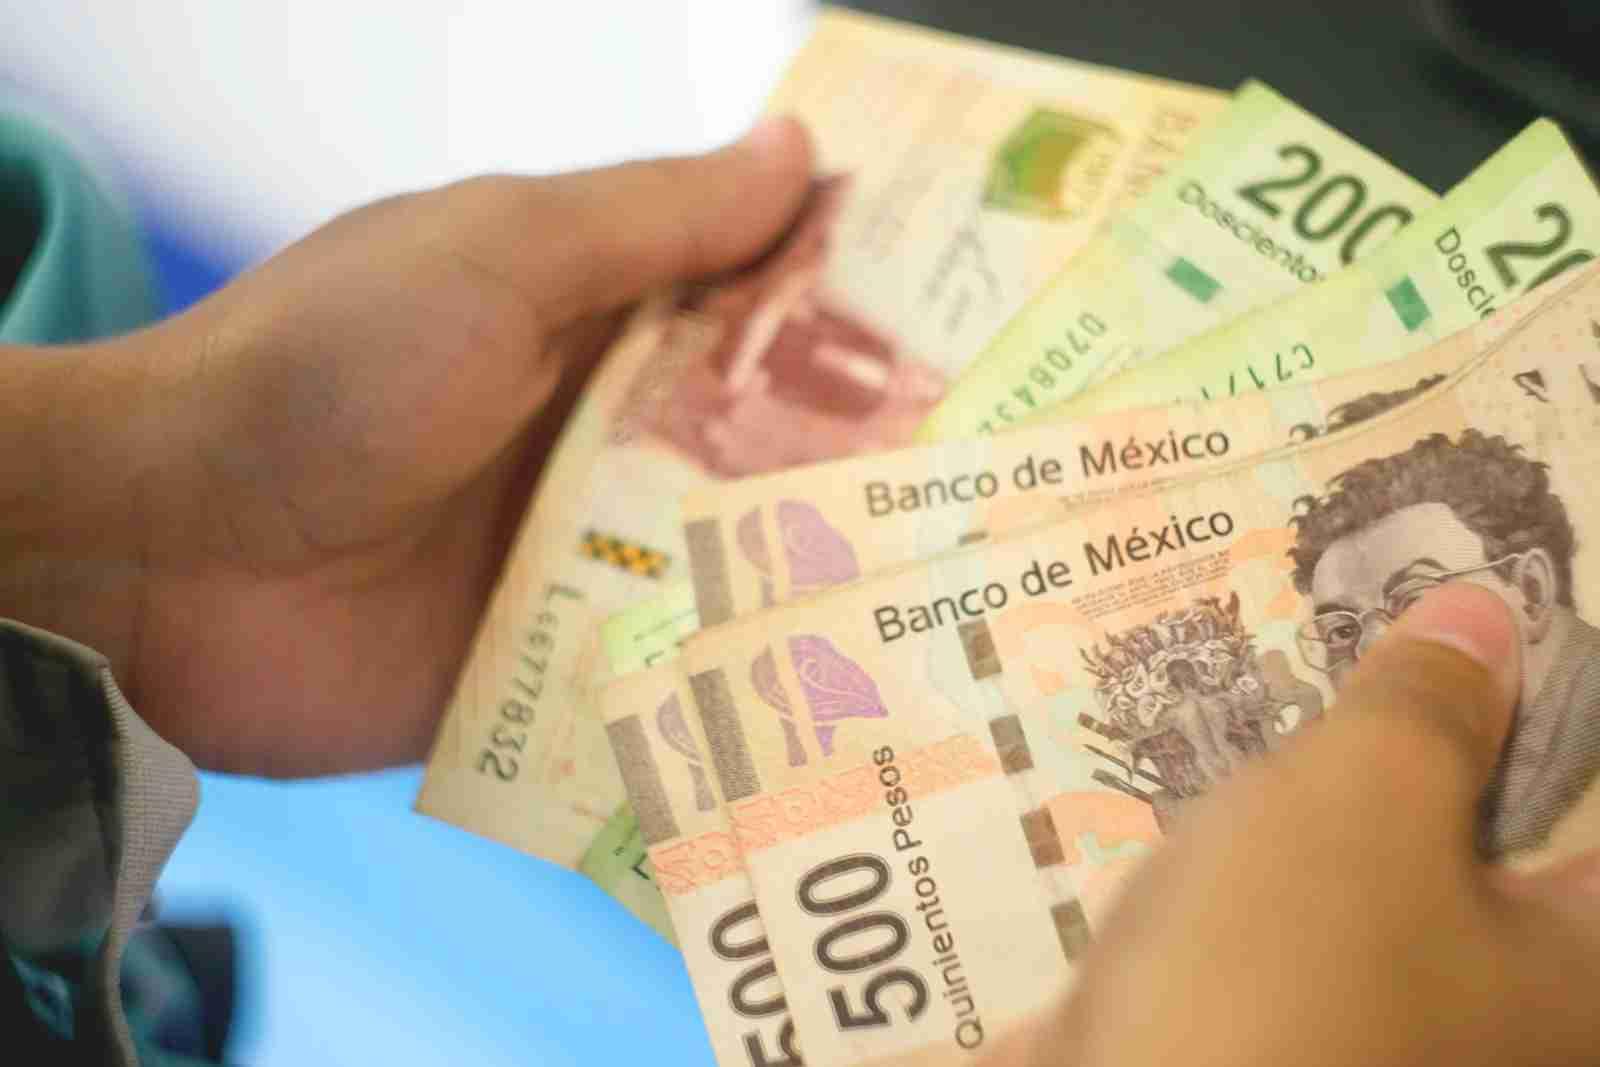 ATMs in Mexico typically spit out larger bills, so be prepared to get change back. (Photo via Shutterstock)